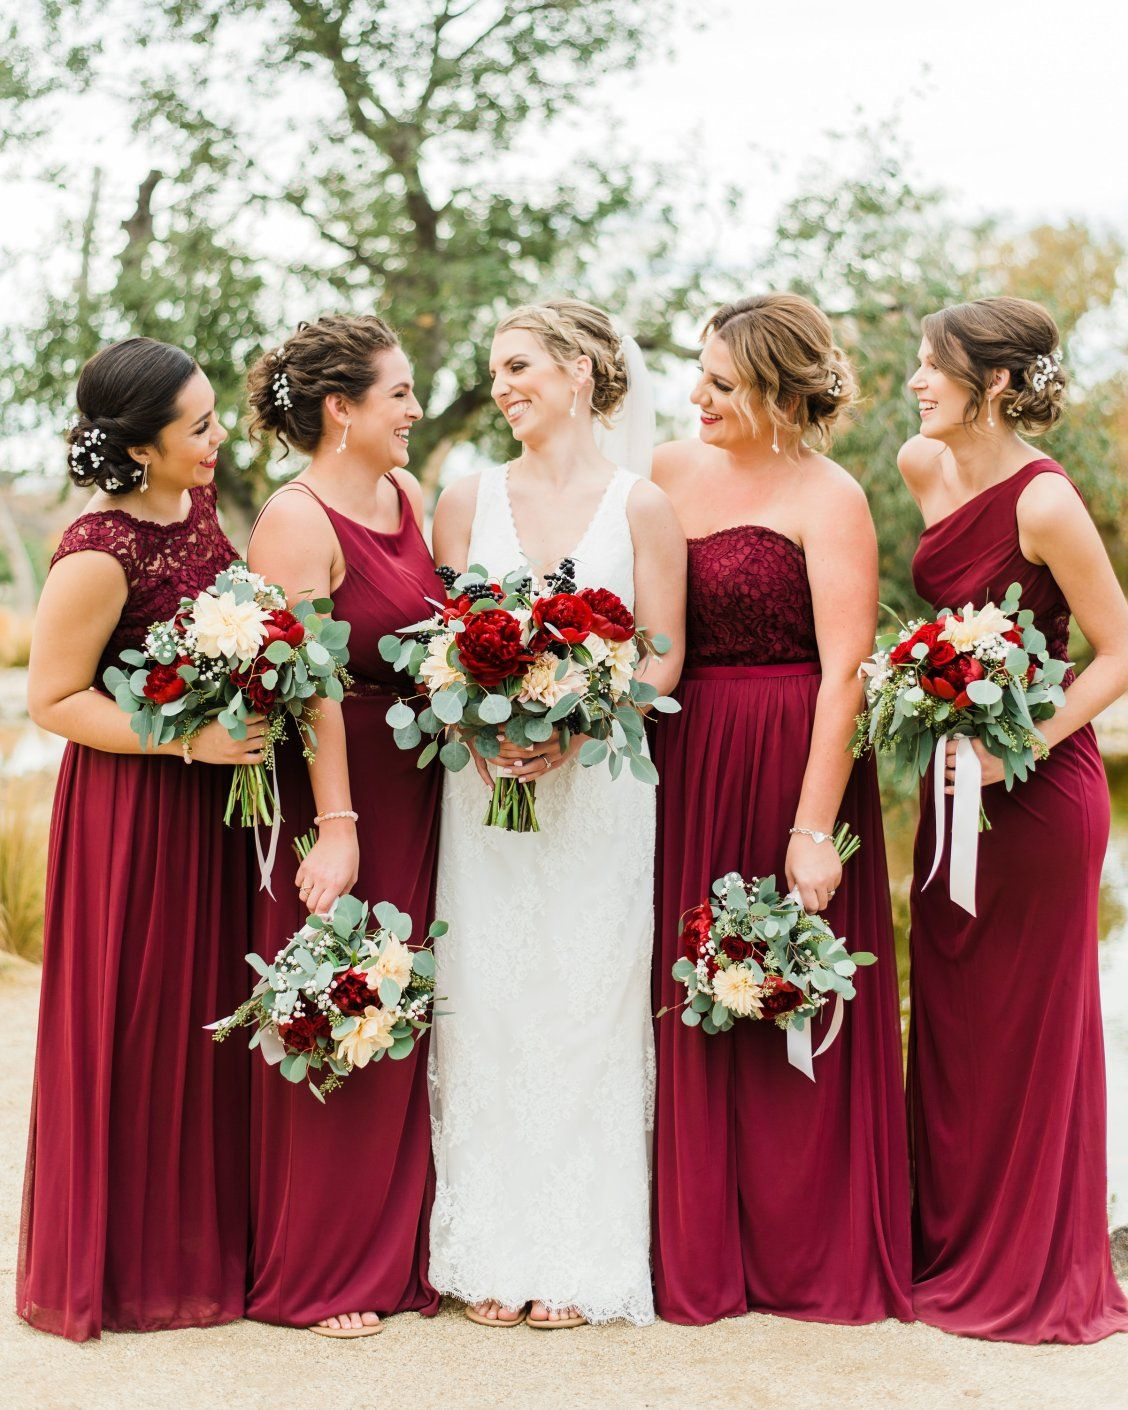 David S Bridal Bridesmaids In These Mix And Match Lace Burgundy Bridesmai Davids Bridal Bridesmaid Dresses Wedding Bridesmaid Dresses Bridal Bridesmaid Dresses